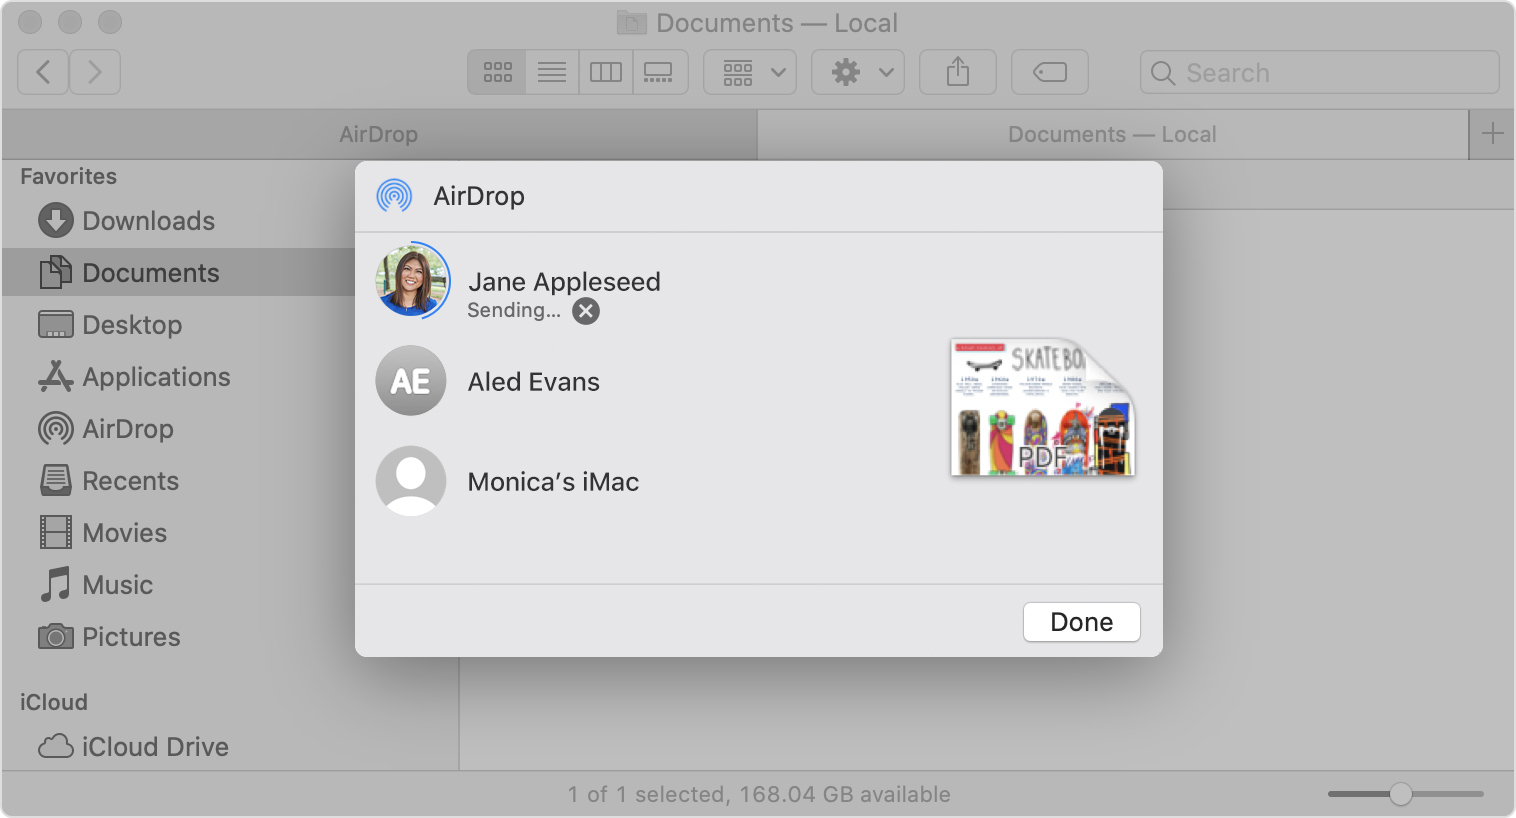 AirDrop sheet in Finder window